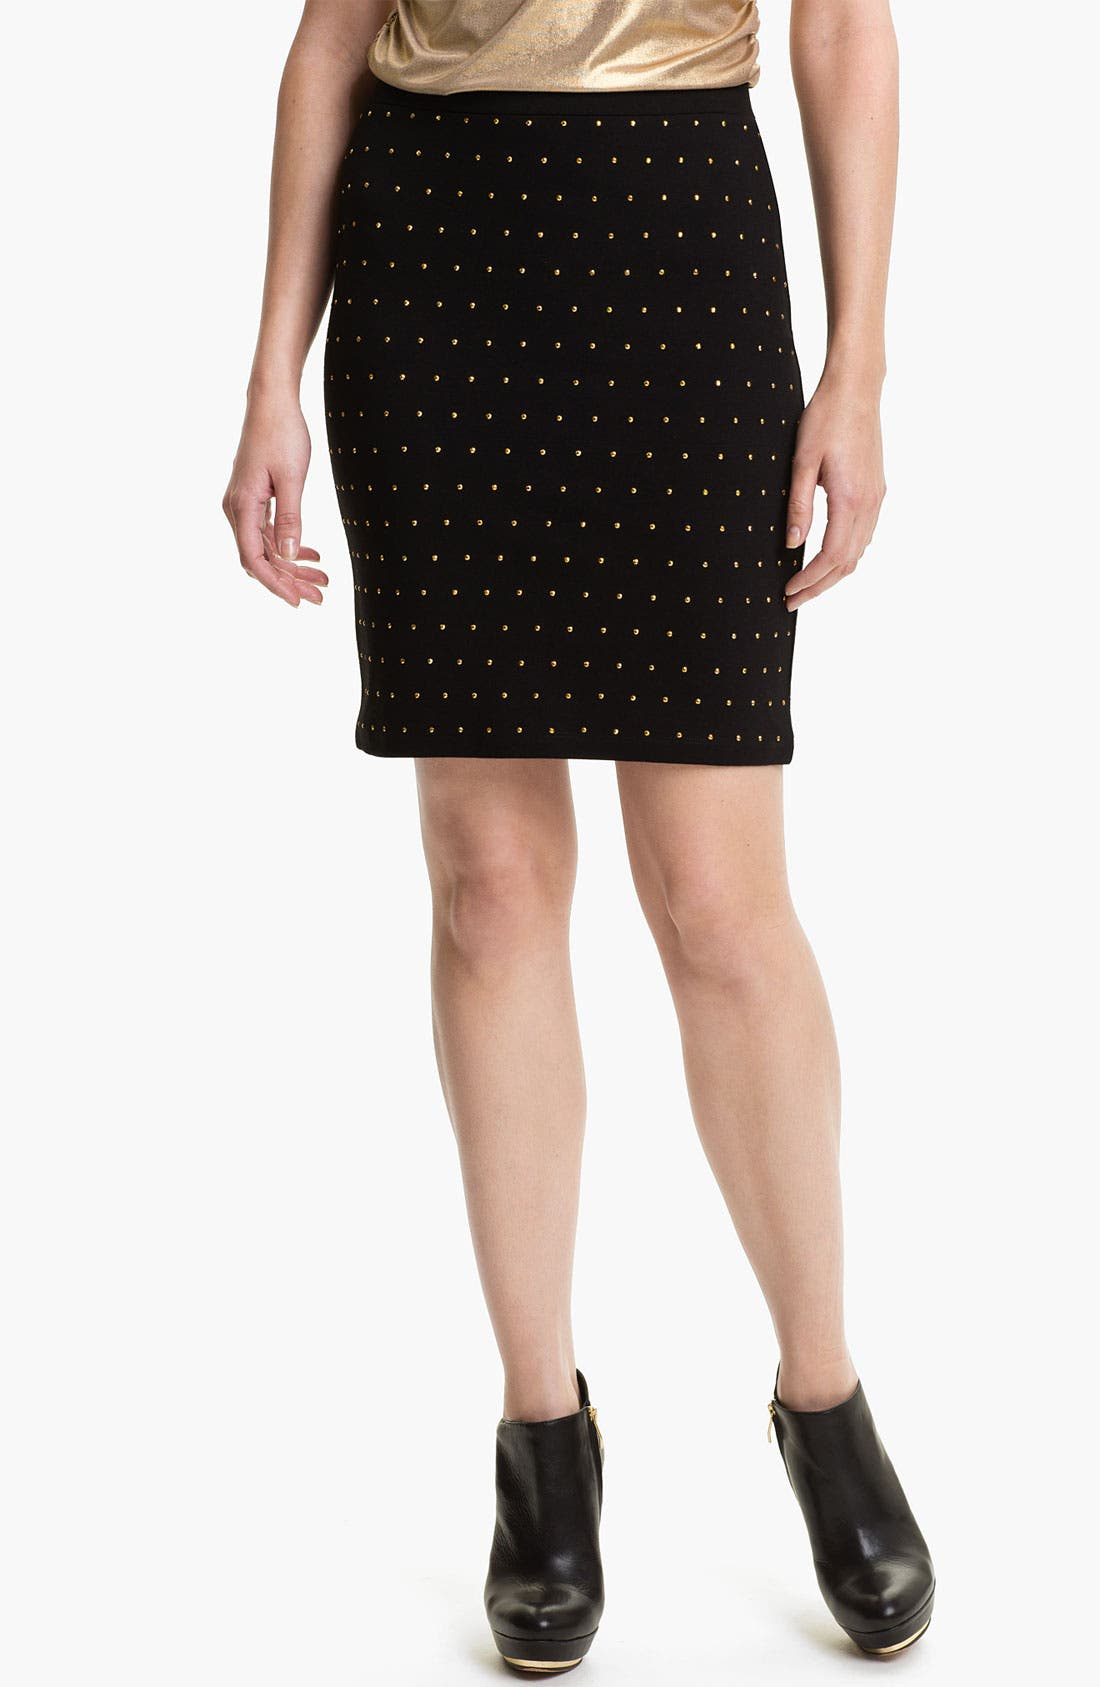 Alternate Image 1 Selected - Vince Camuto 'Disco' Studded Skirt